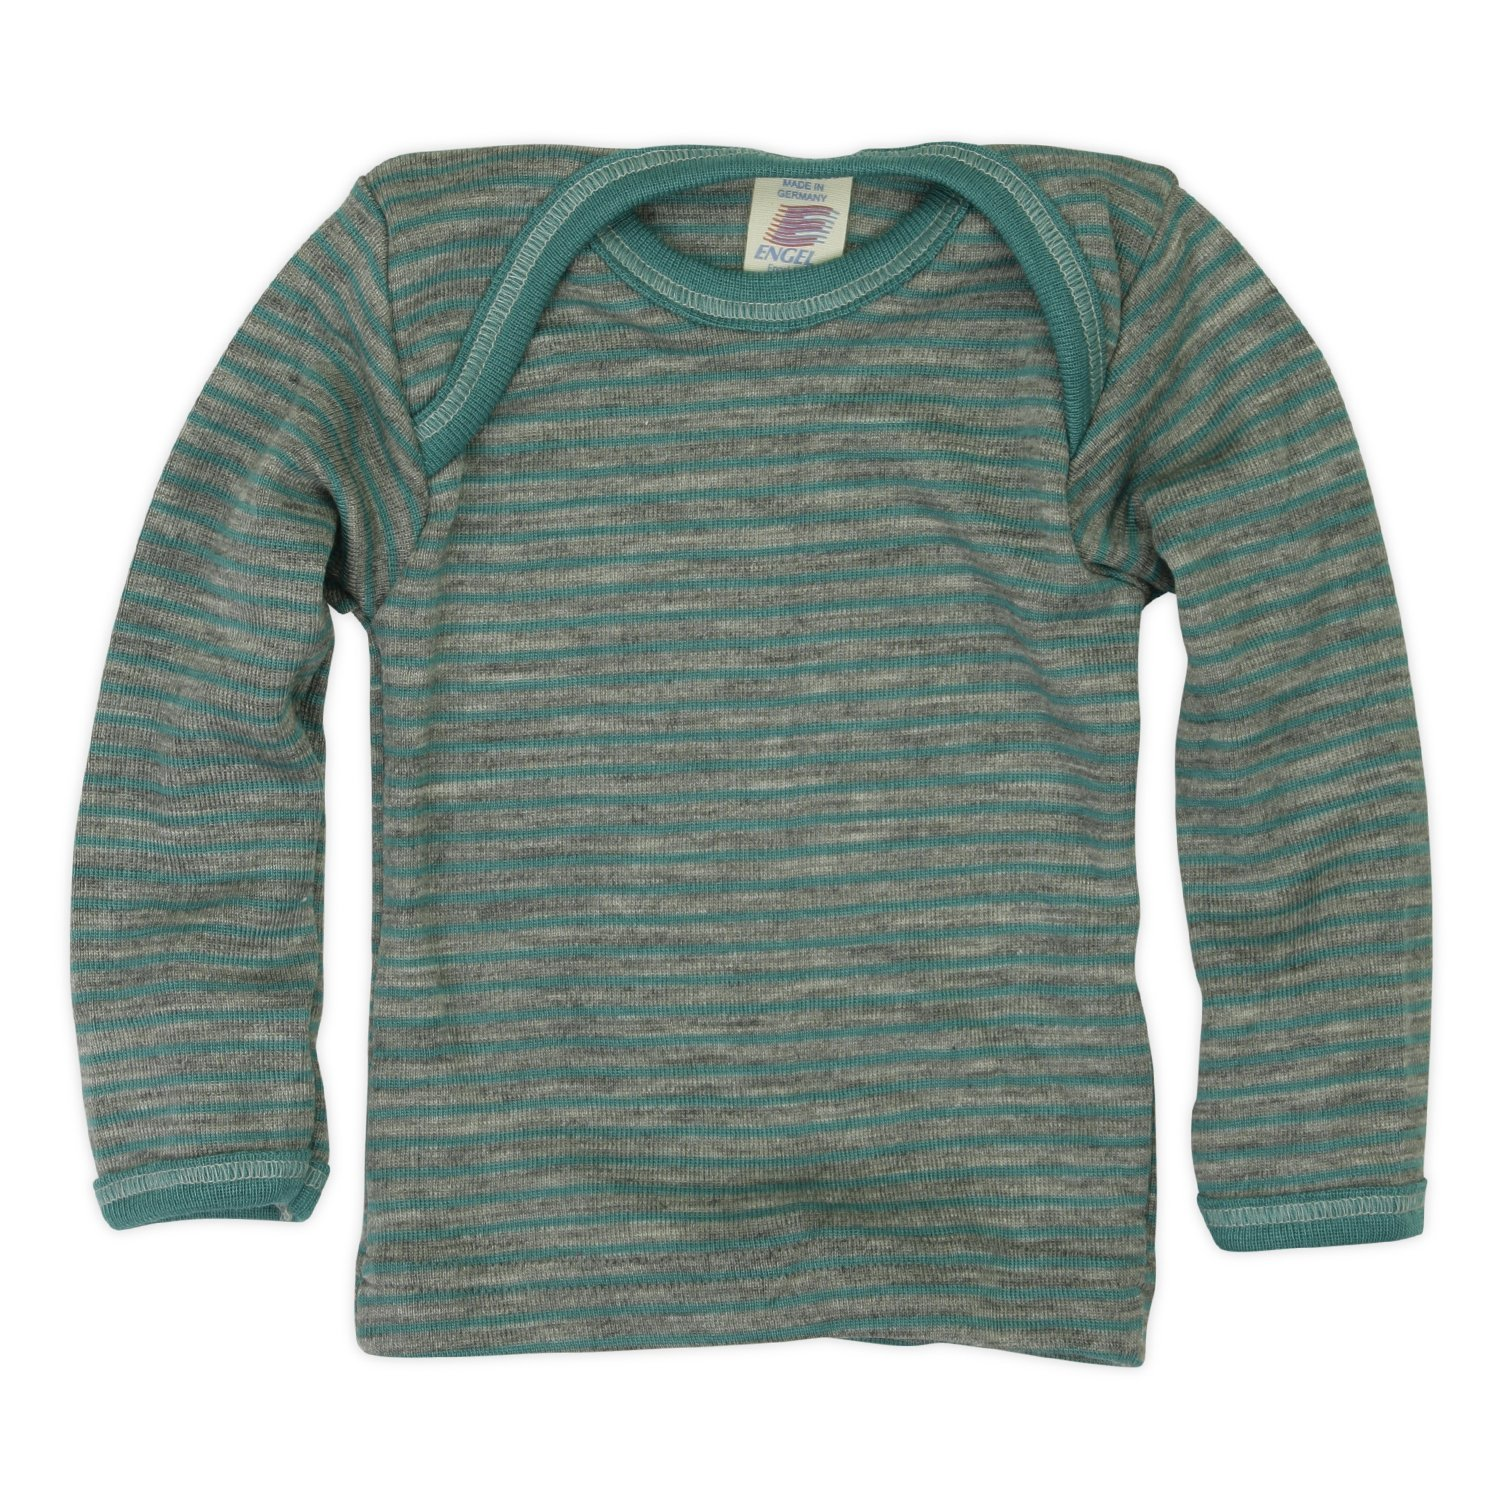 Engel - Baby T-Shirt, Long Sleeves, 70% Organic Merino Wool, 30% Silk